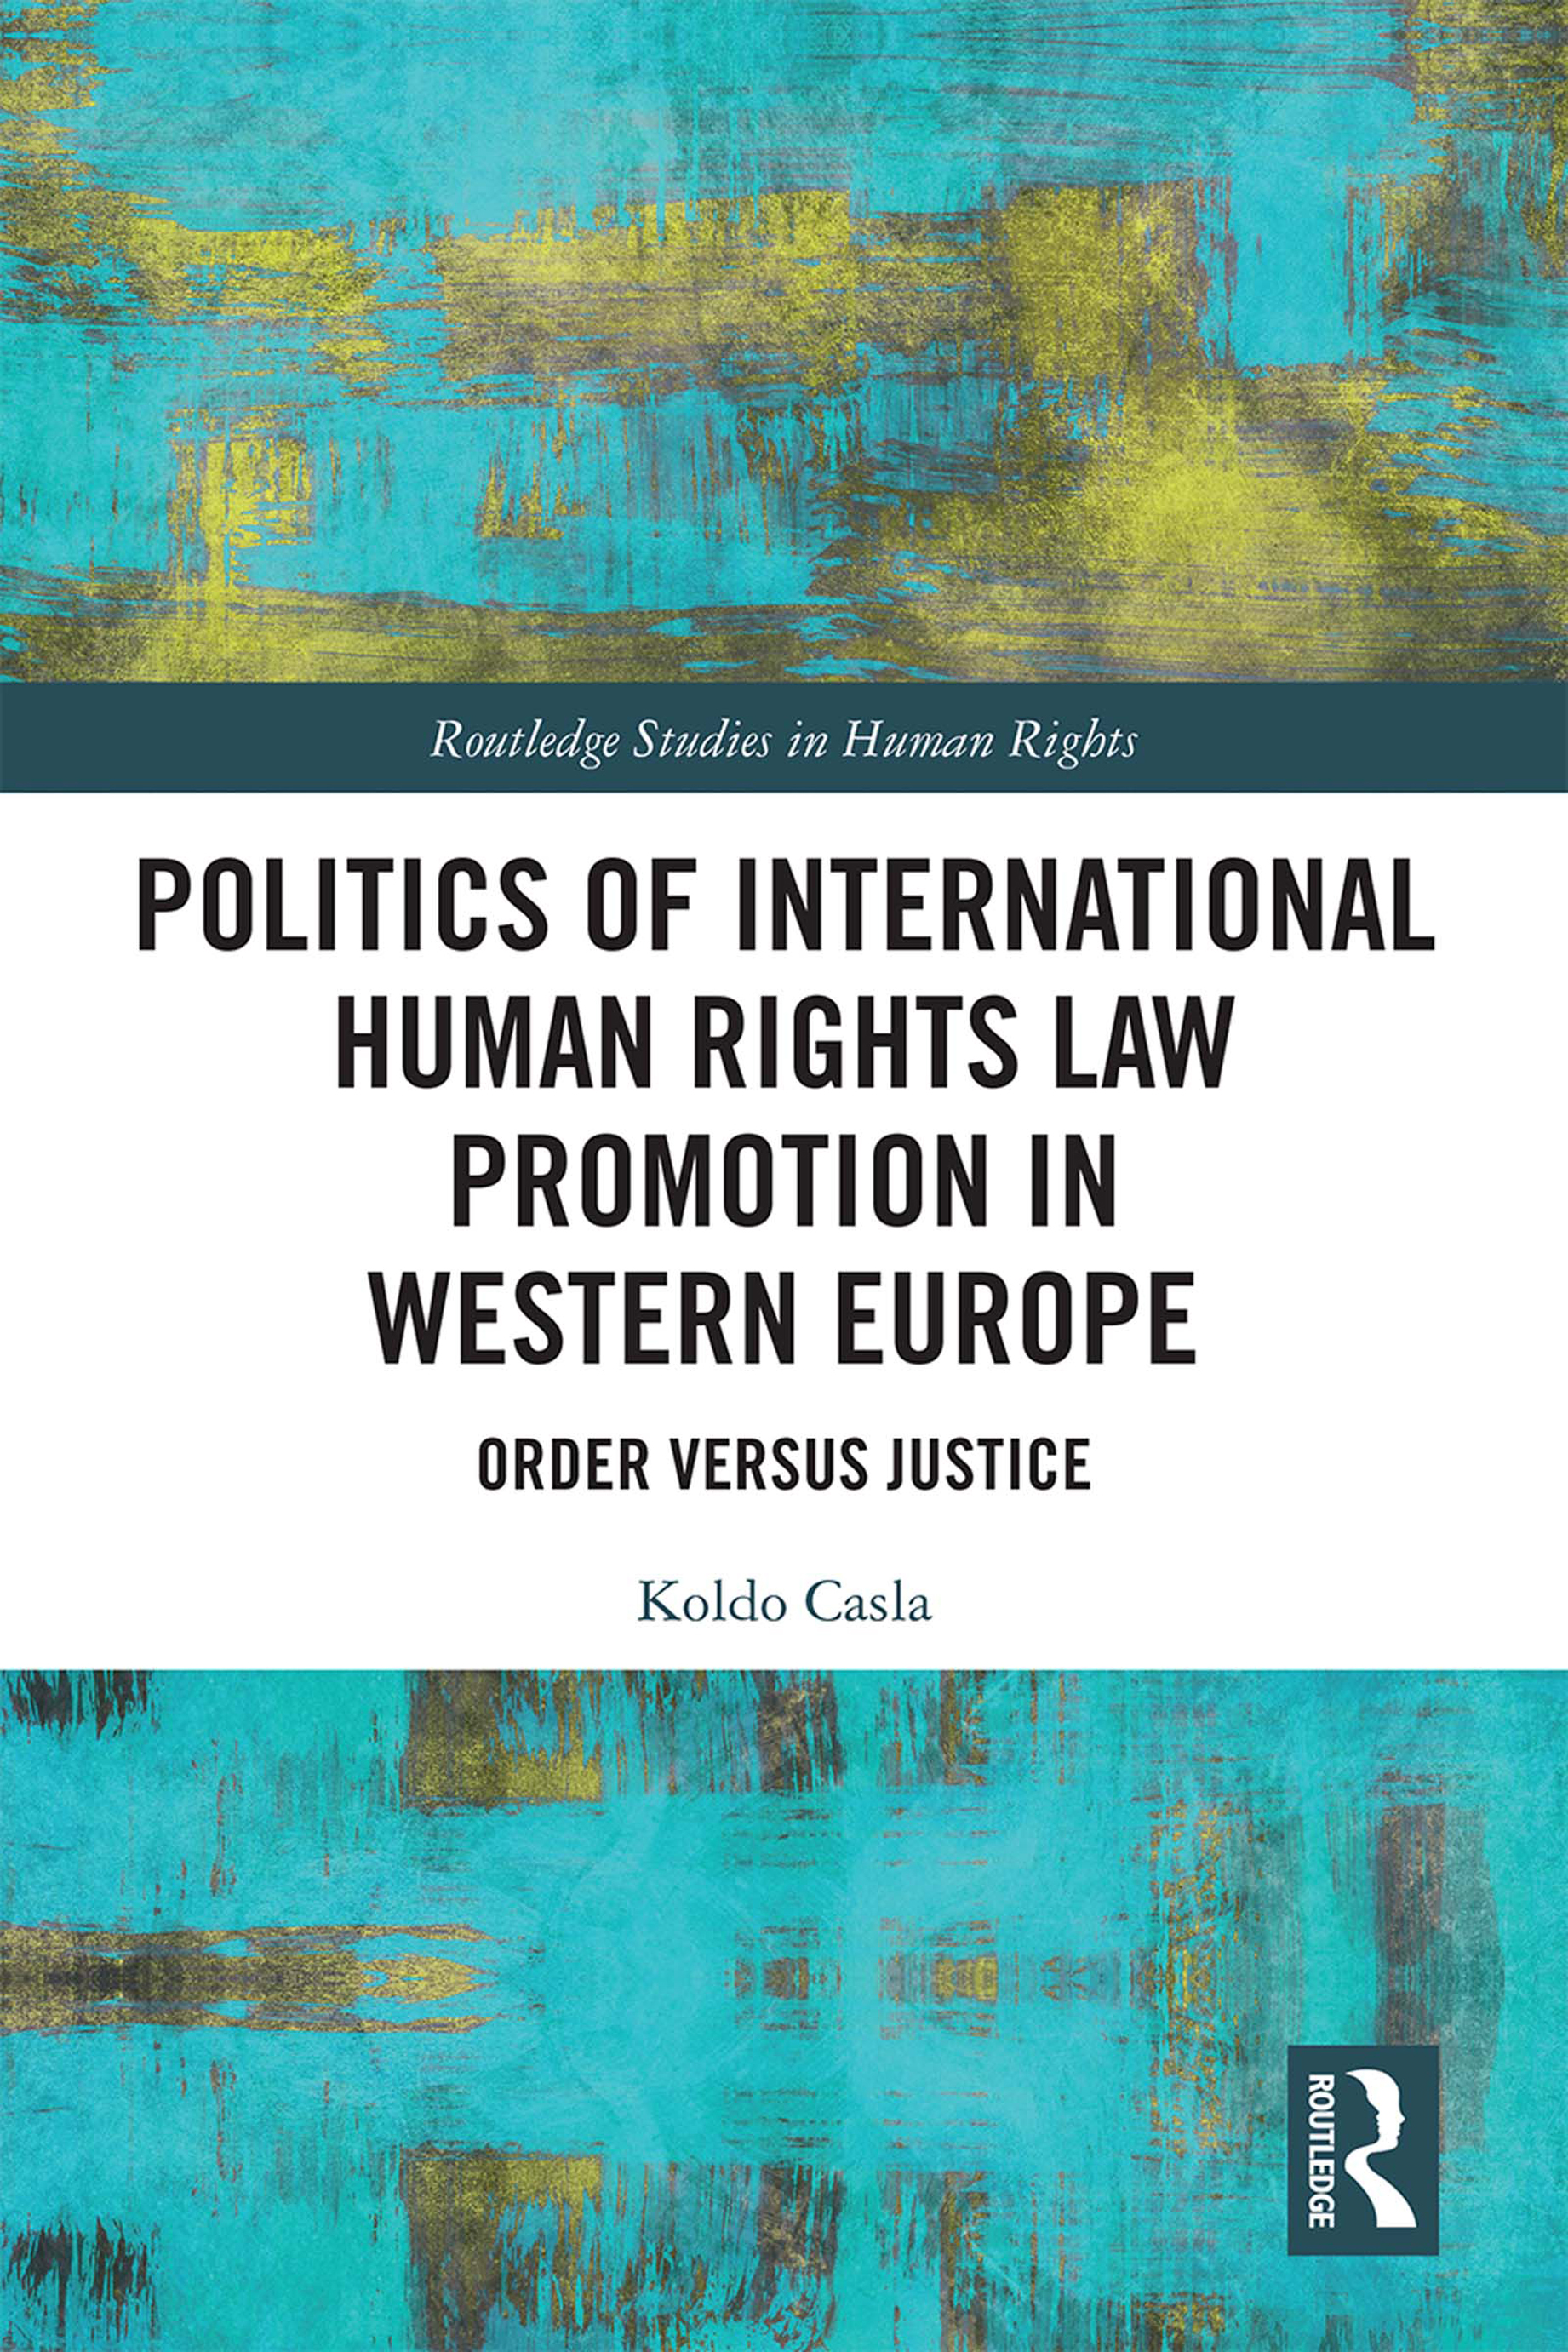 Politics of International Human Rights Law Promotion in Western Europe: Order versus Justice book cover